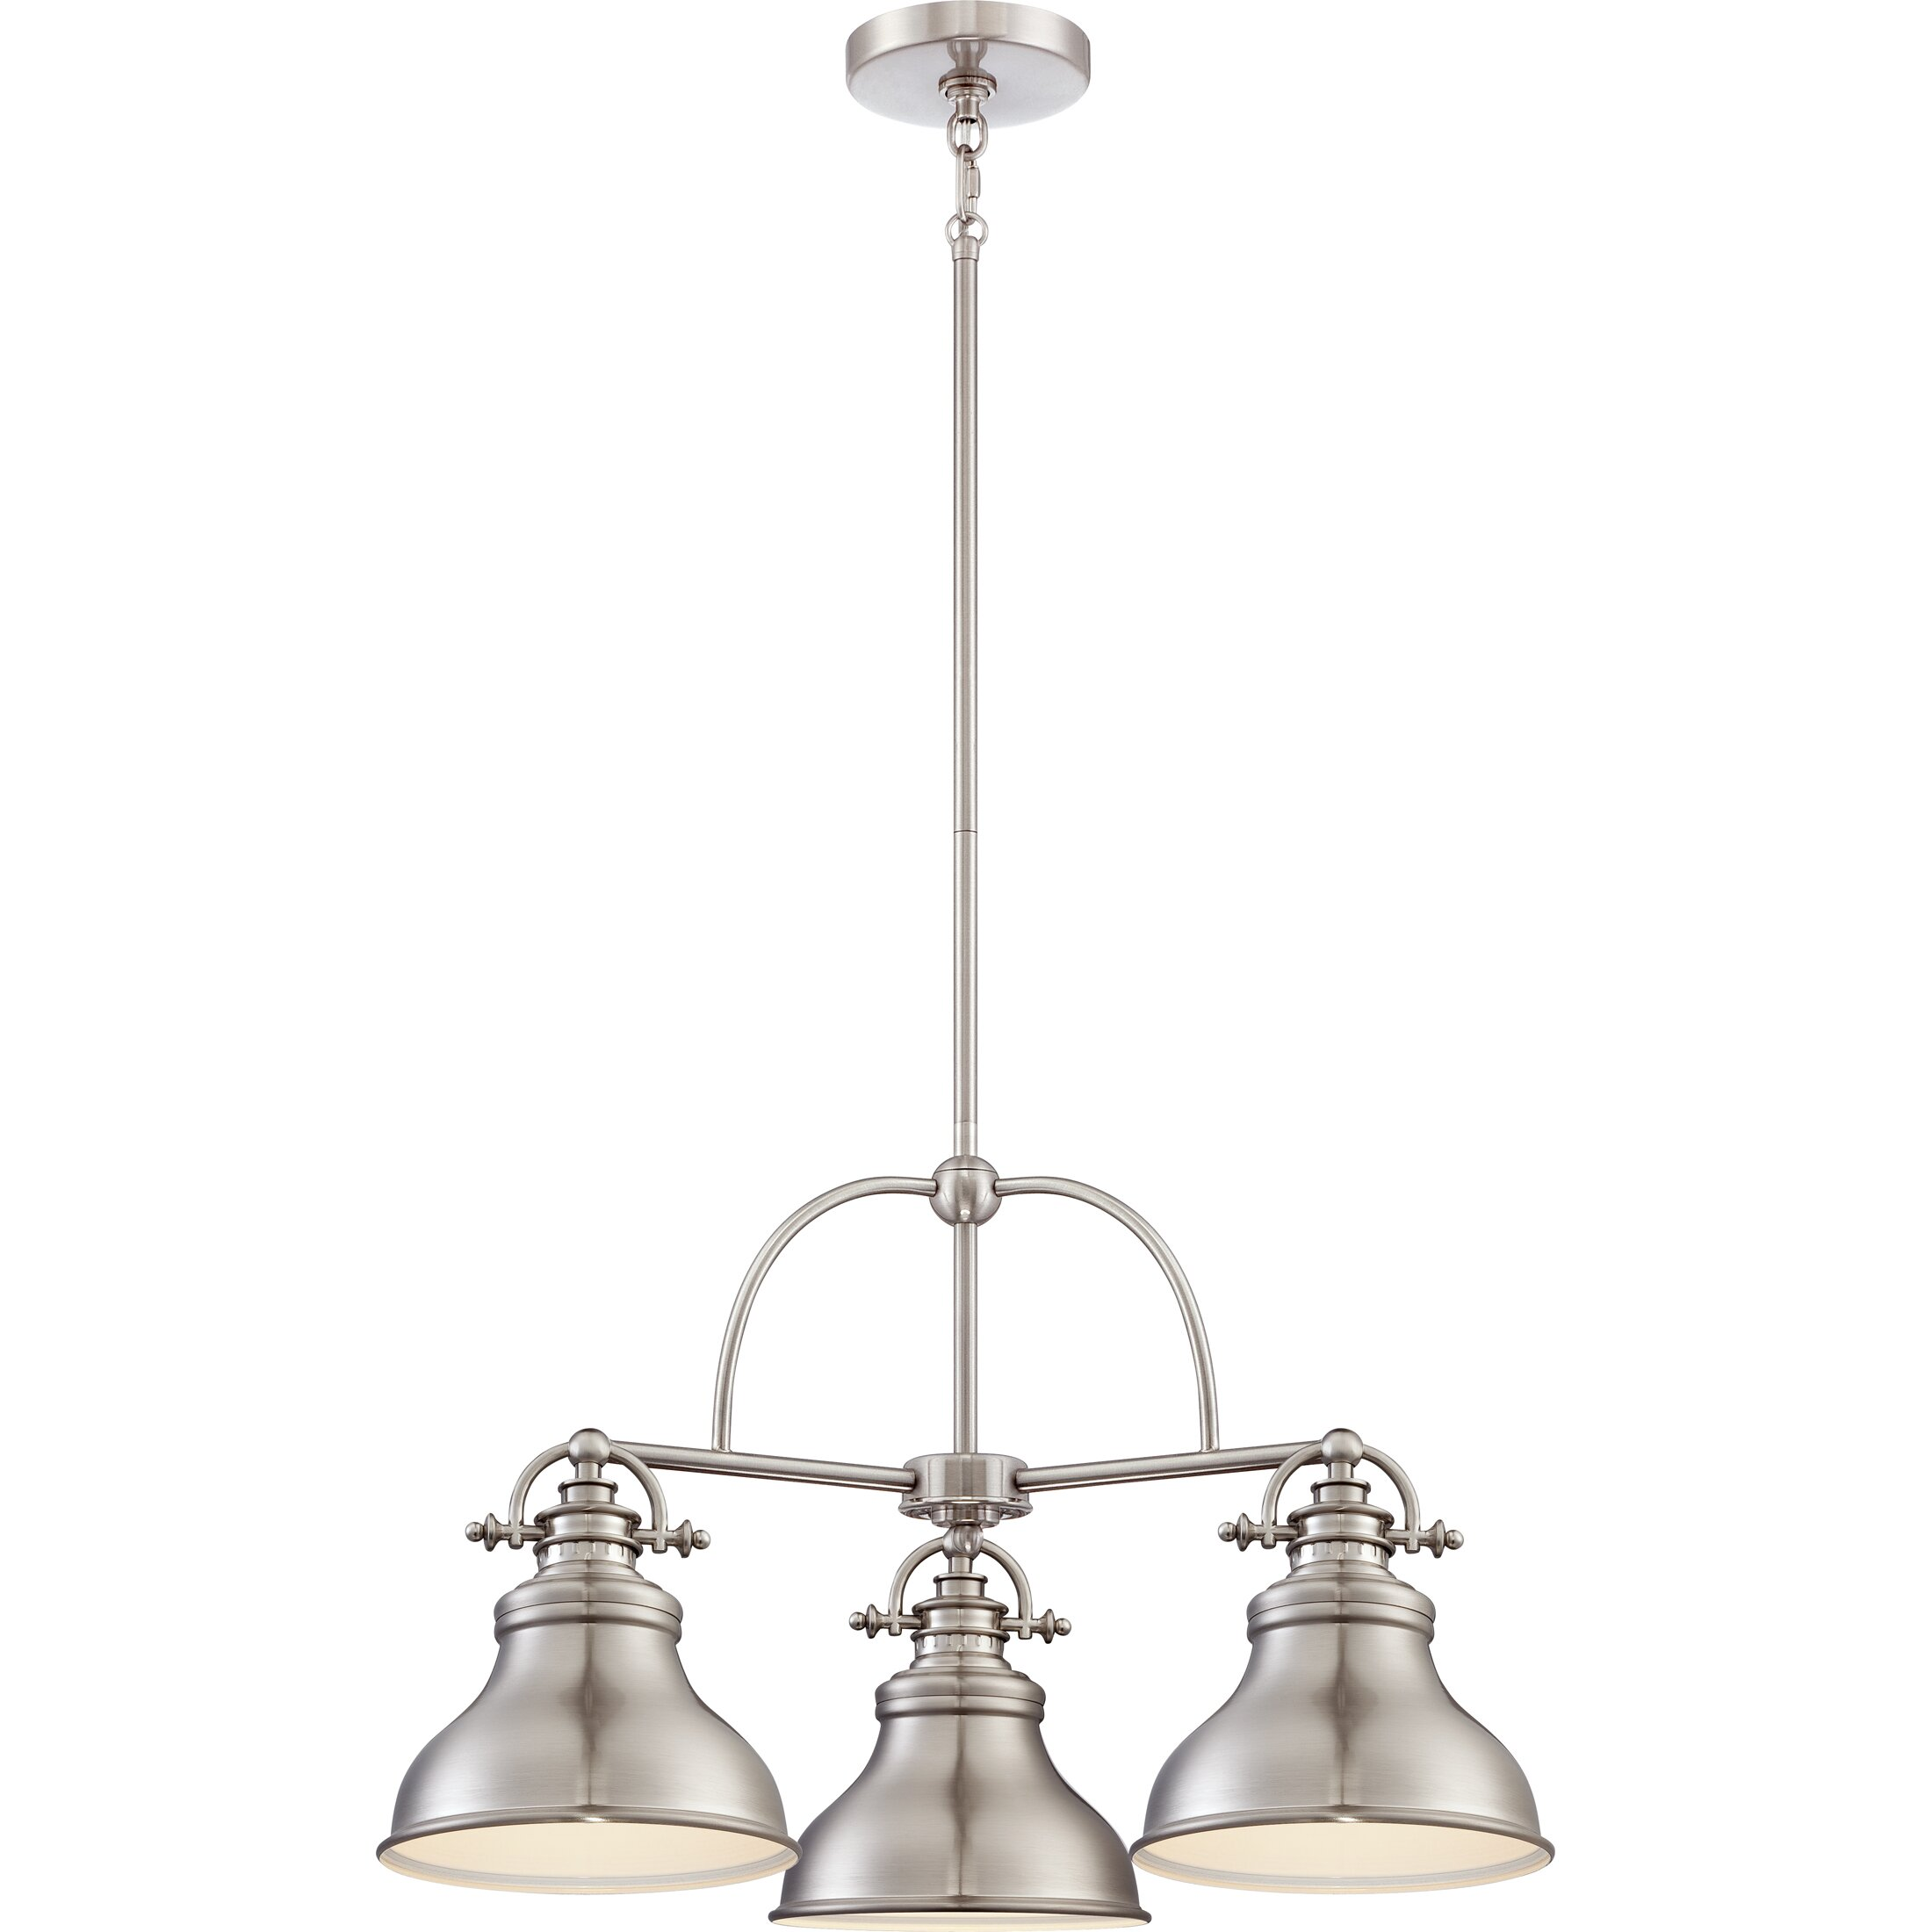 Quoizel Emery 3 Light Kitchen Island Pendant & Reviews